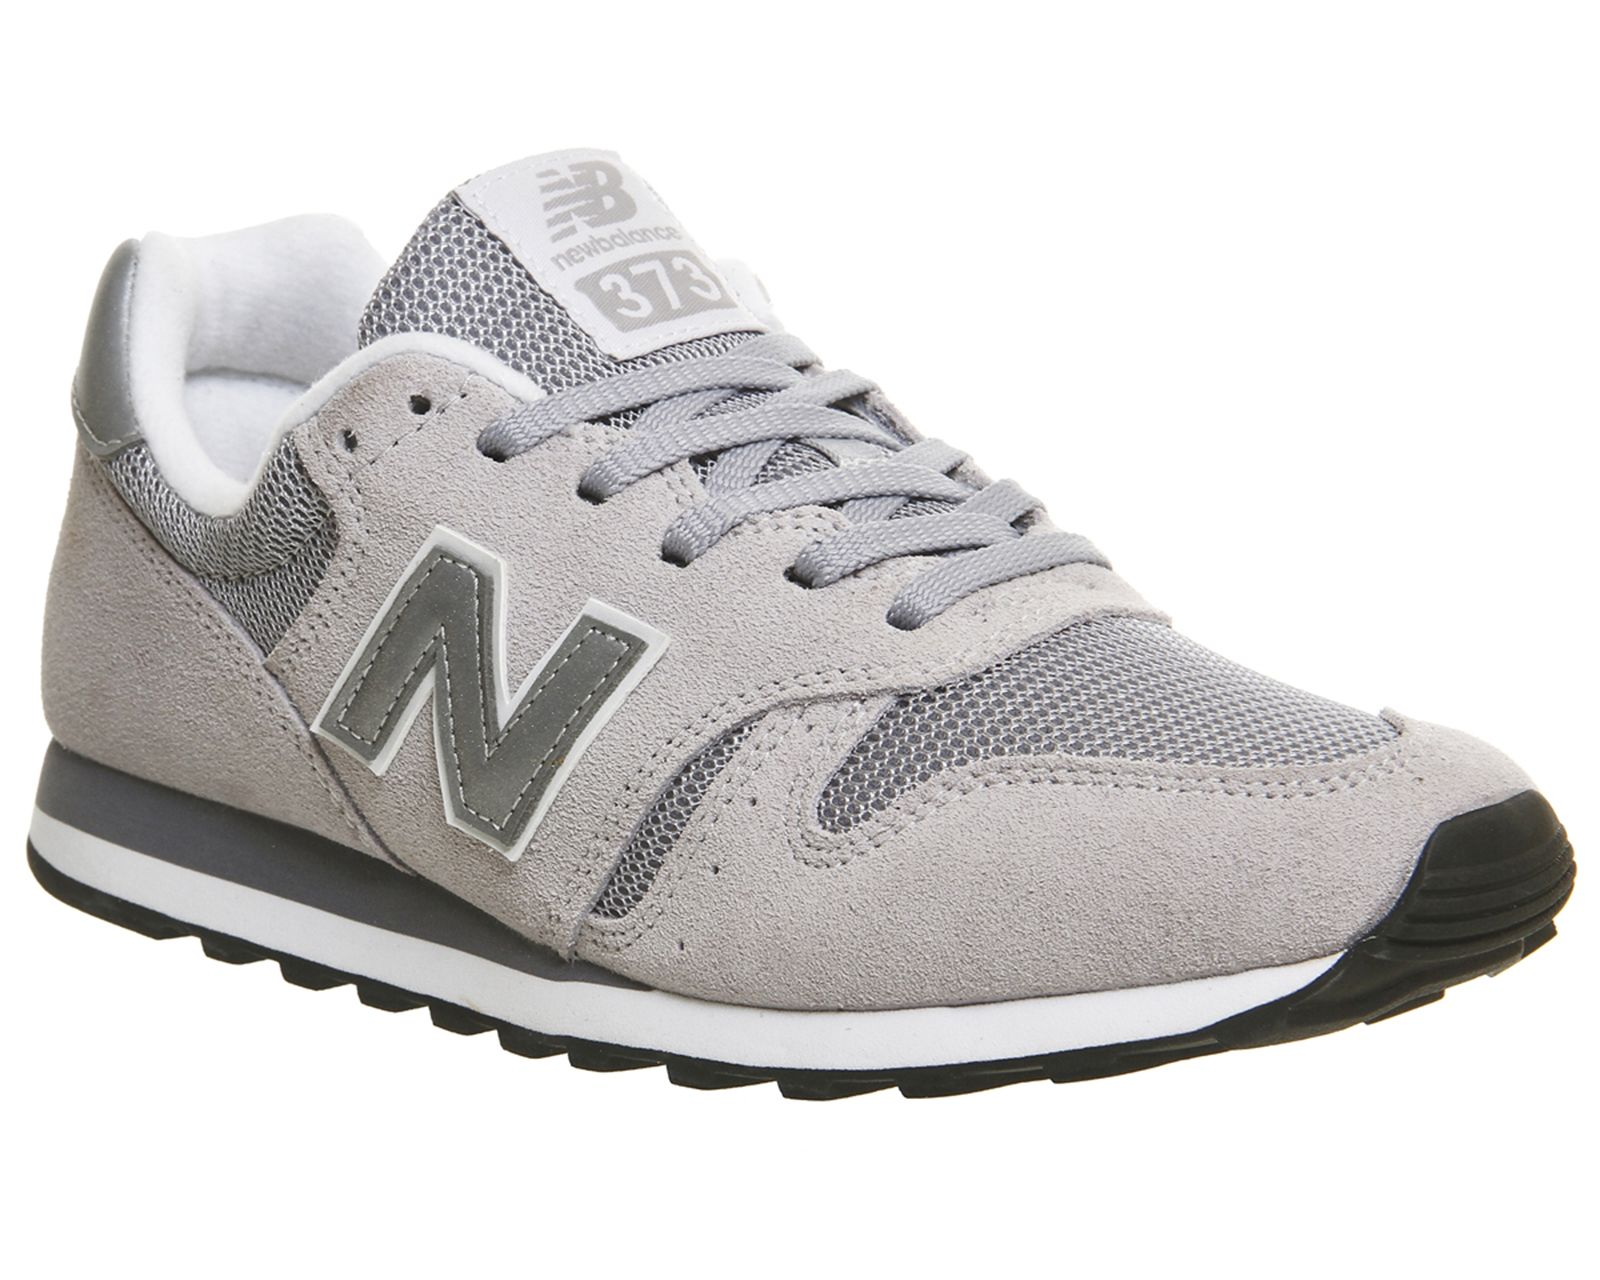 new balance 373 running sneakers